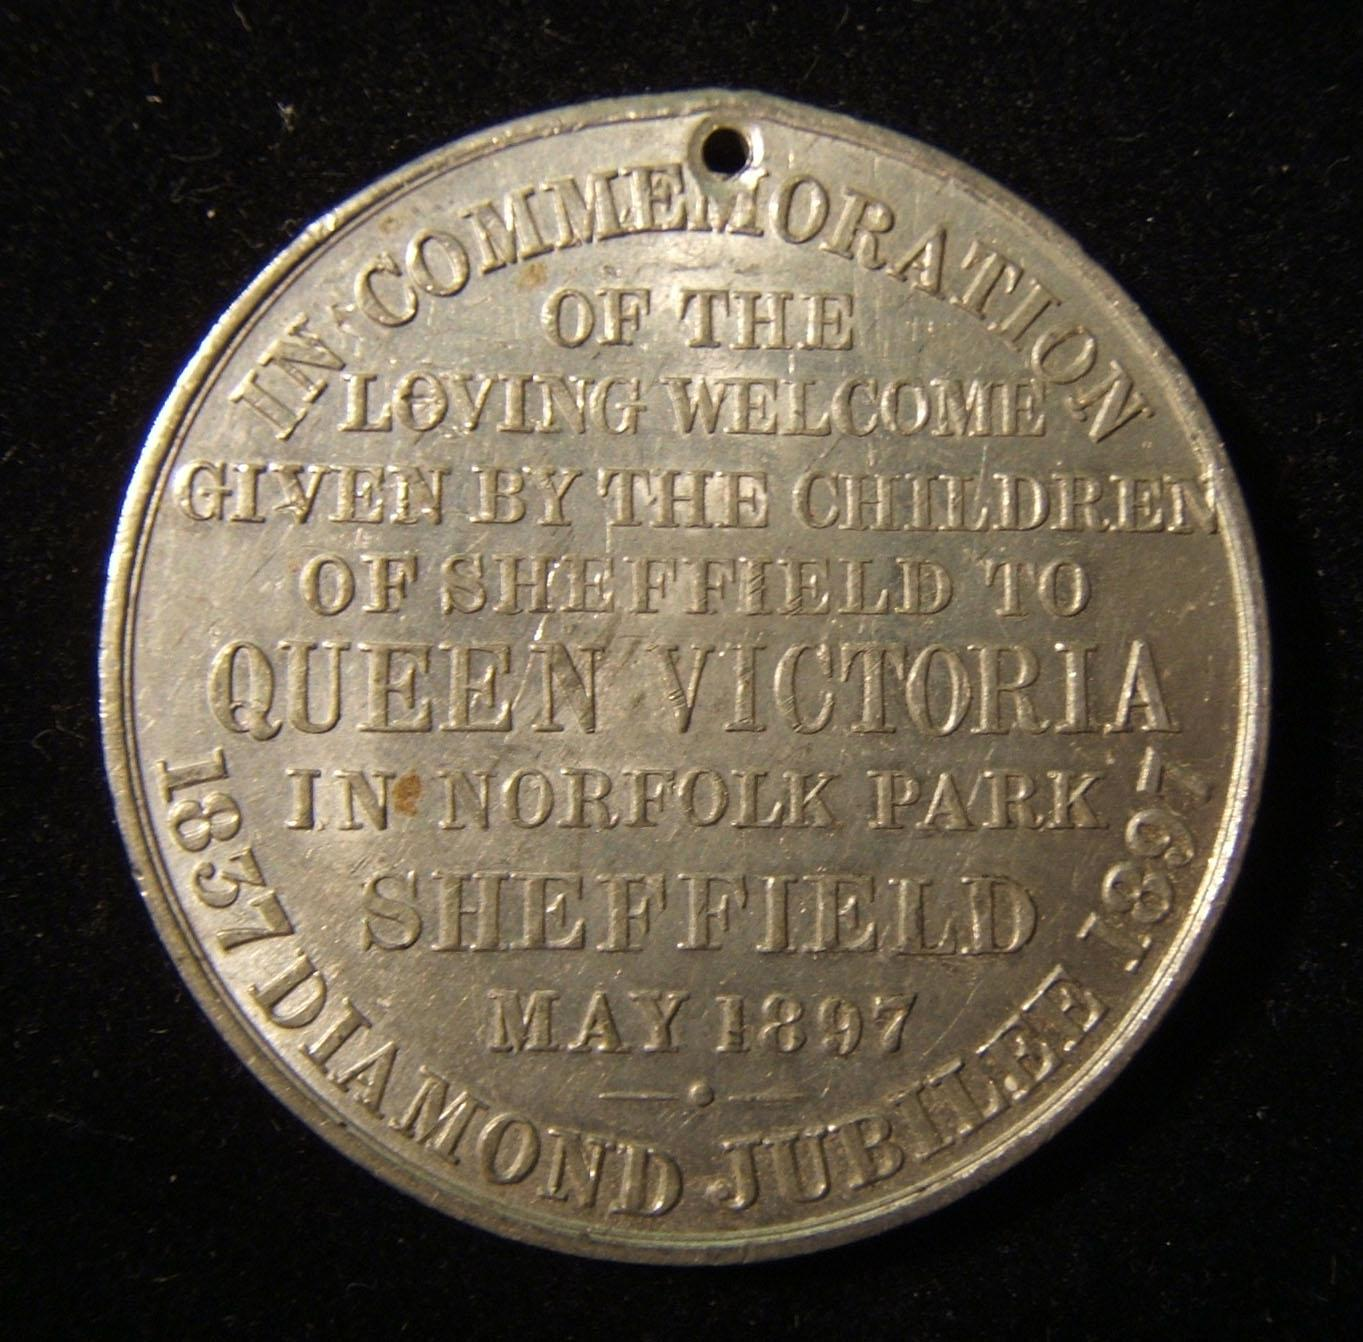 Britain: Queen Victoria 60th anniversary white metal diamond jubilee/Sheffield visit medal by M.R.T.D (unclear die strike), 1897; size: 38.75mm; weight: 20.75g. Obverse bears left-